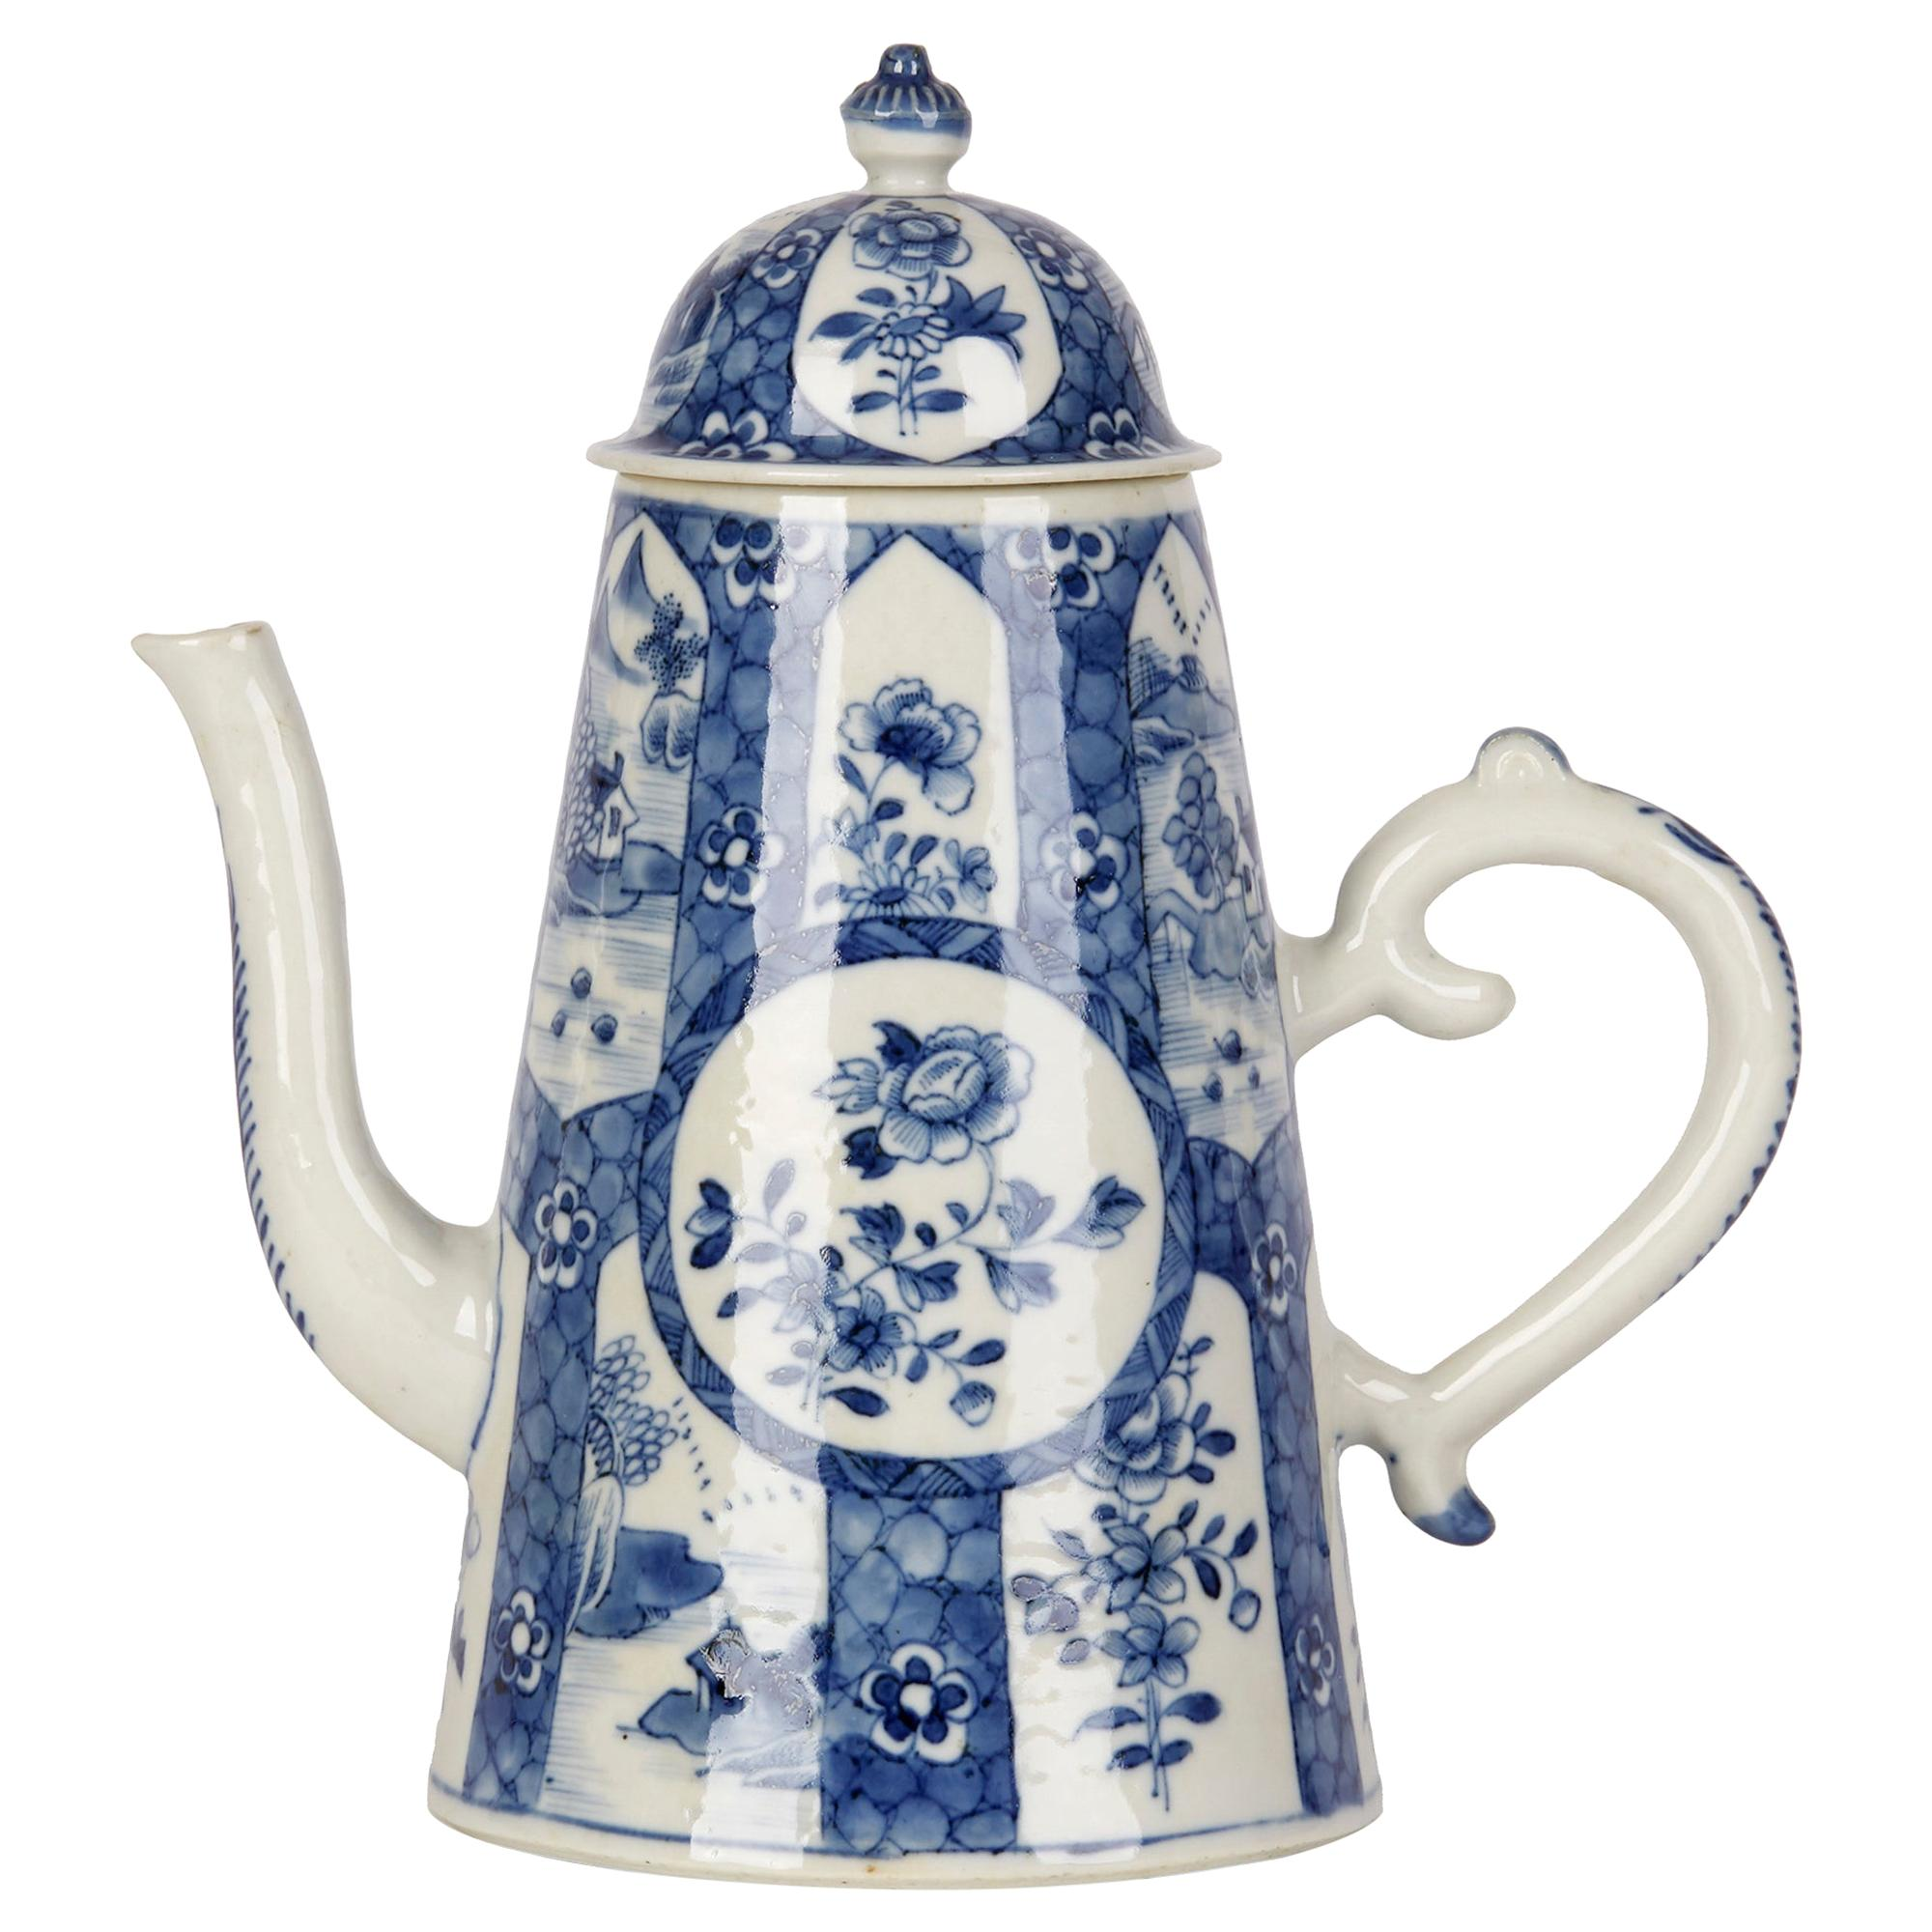 Chinese Large Qianlong Blue and White Porcelain Chocolate Pot, 18th Century